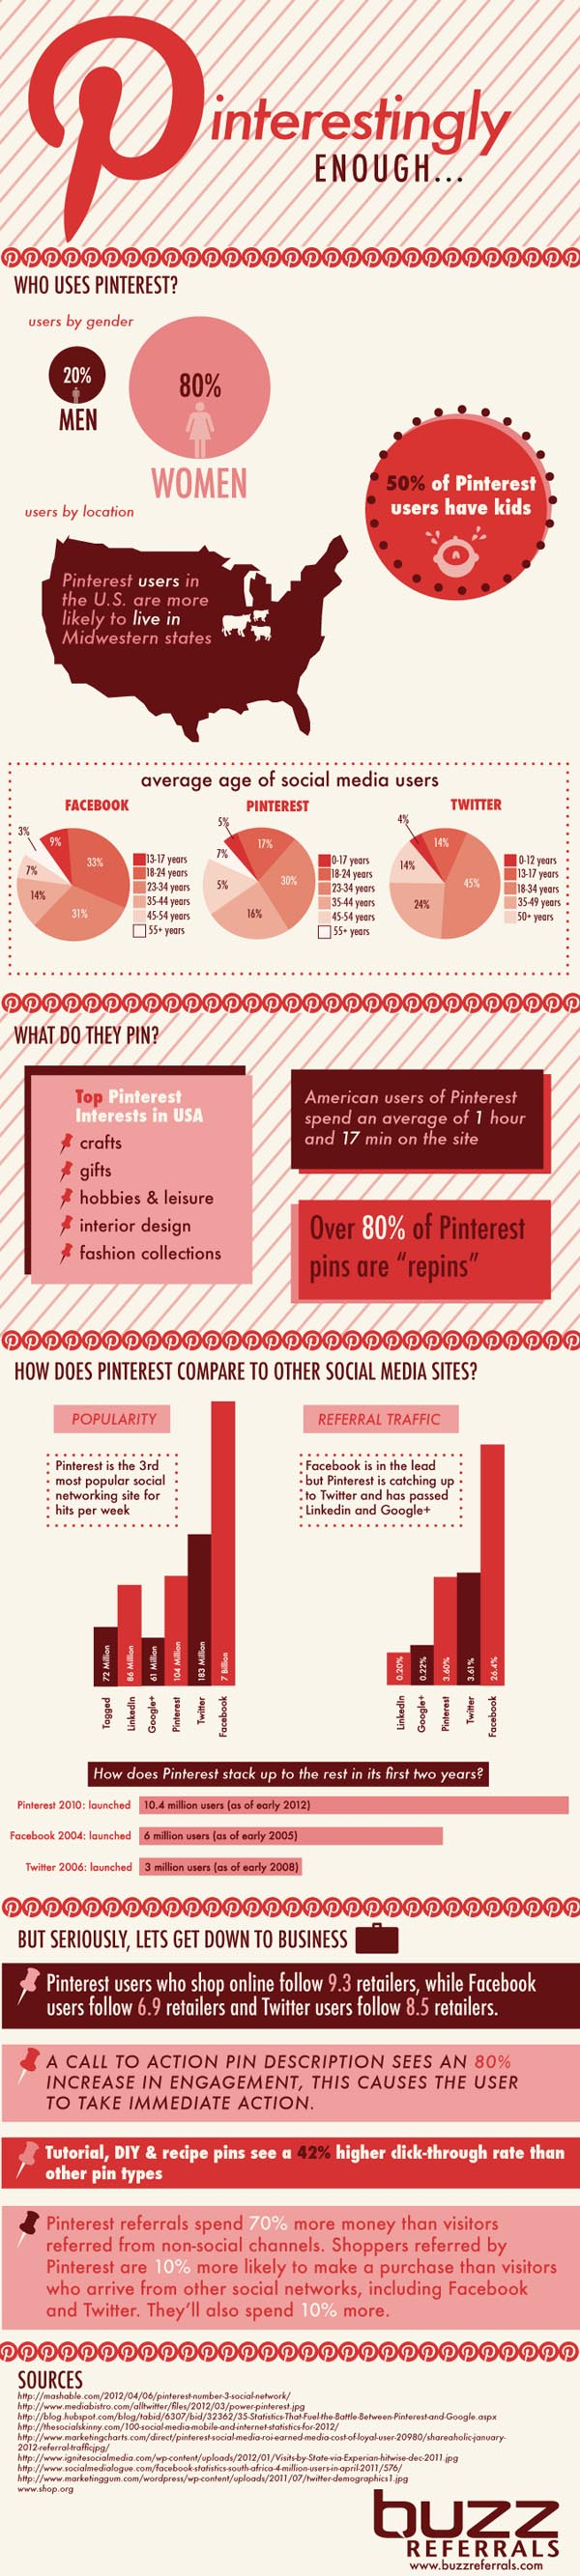 Why the Interest in Pinterest?